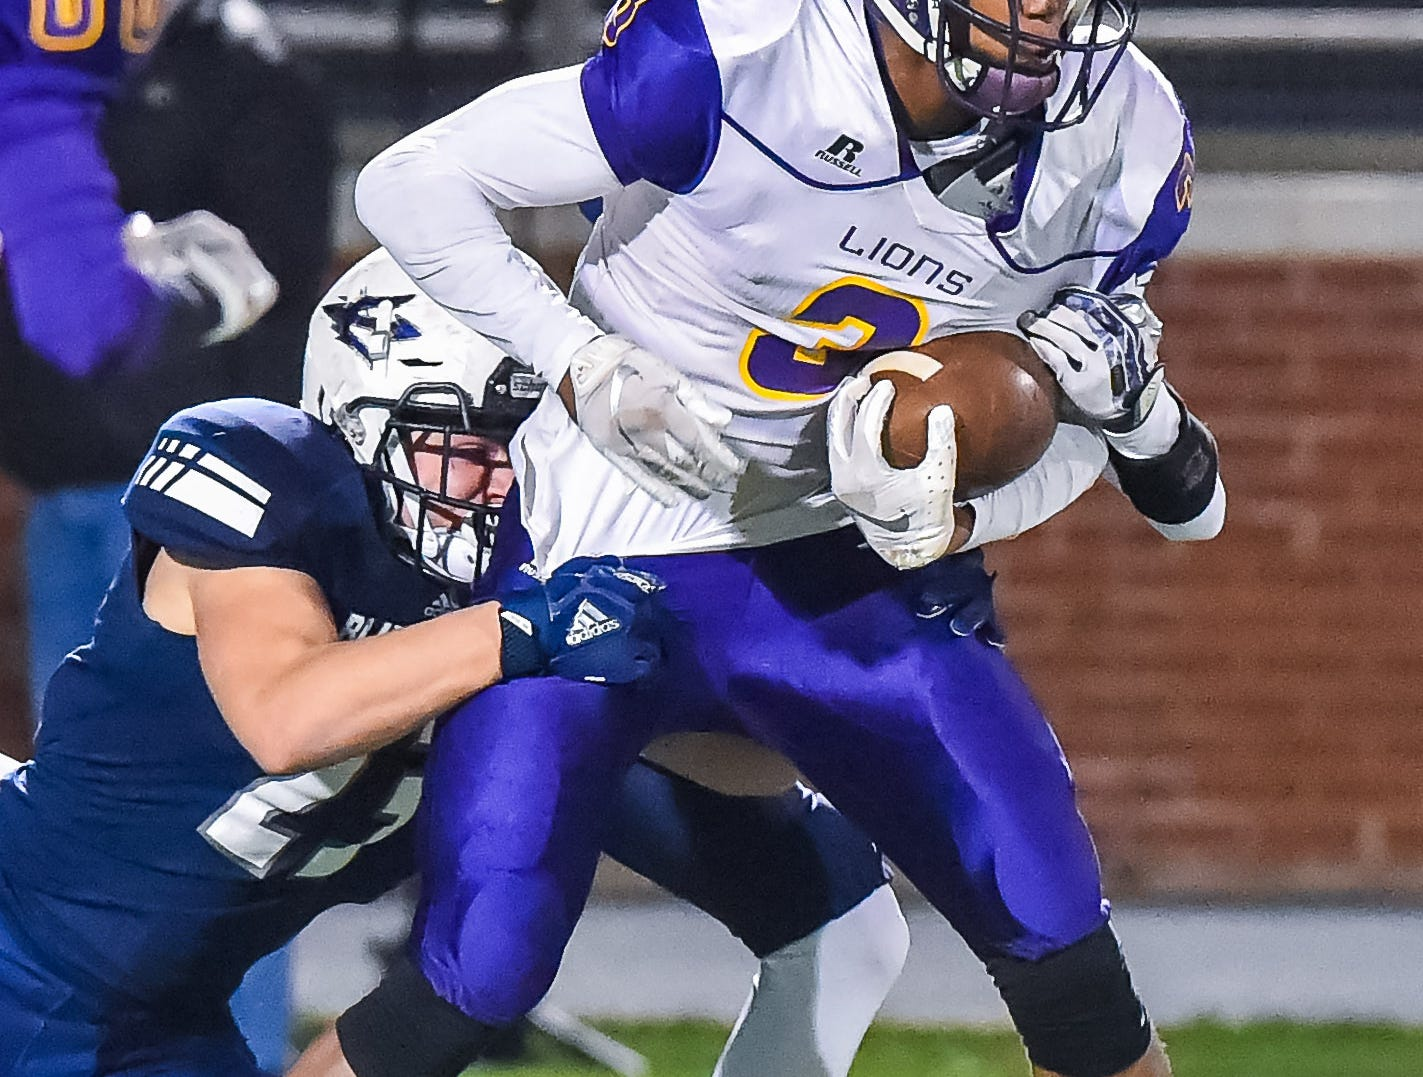 Union Christian's (3) Kris Evans (3) against tries to shake a tackle against Tunica during the MAIS Class A Championship Football game held at Jackson Academy in Jackson, MS, Thursday November 15, 2018.(Bob Smith-For The Clarion Ledger)